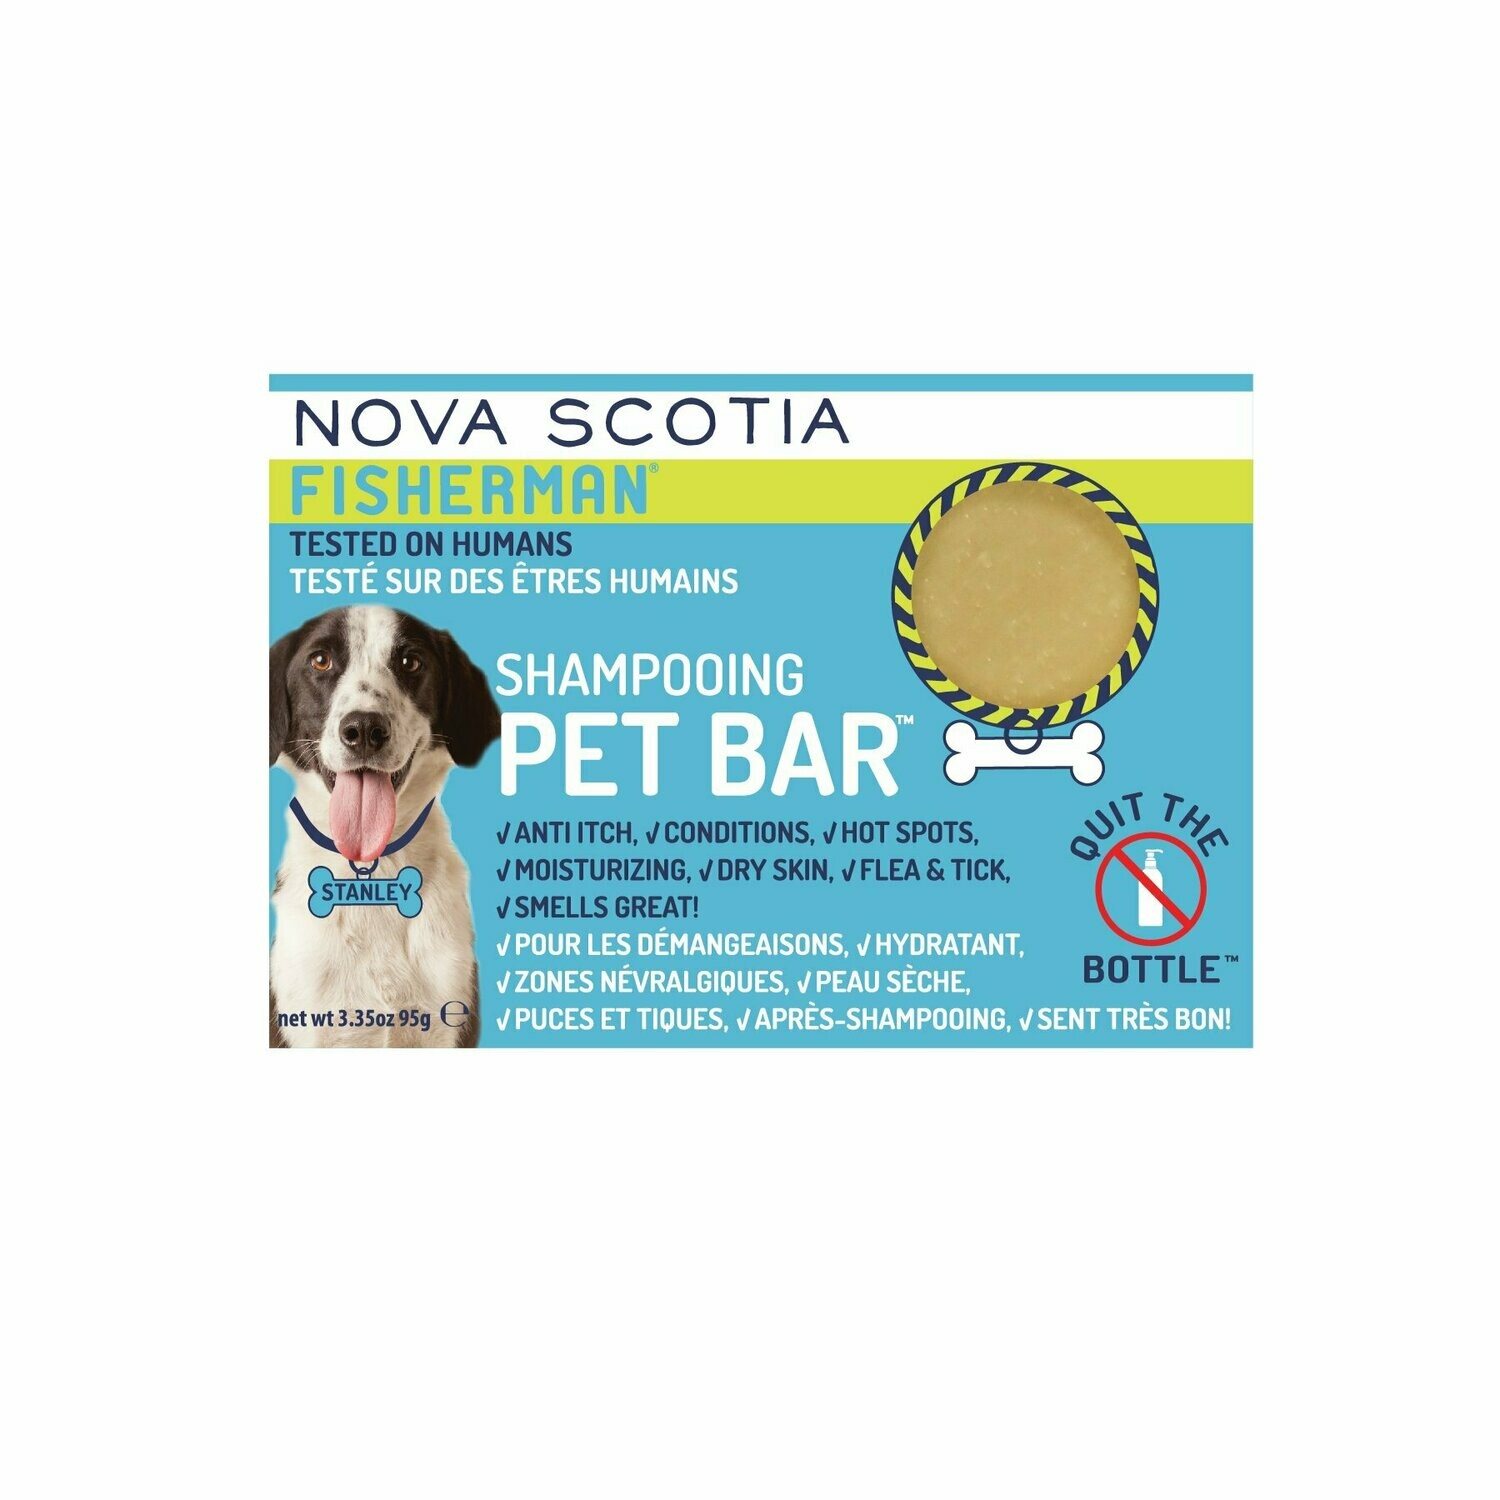 NS Fisherman Pet Bar